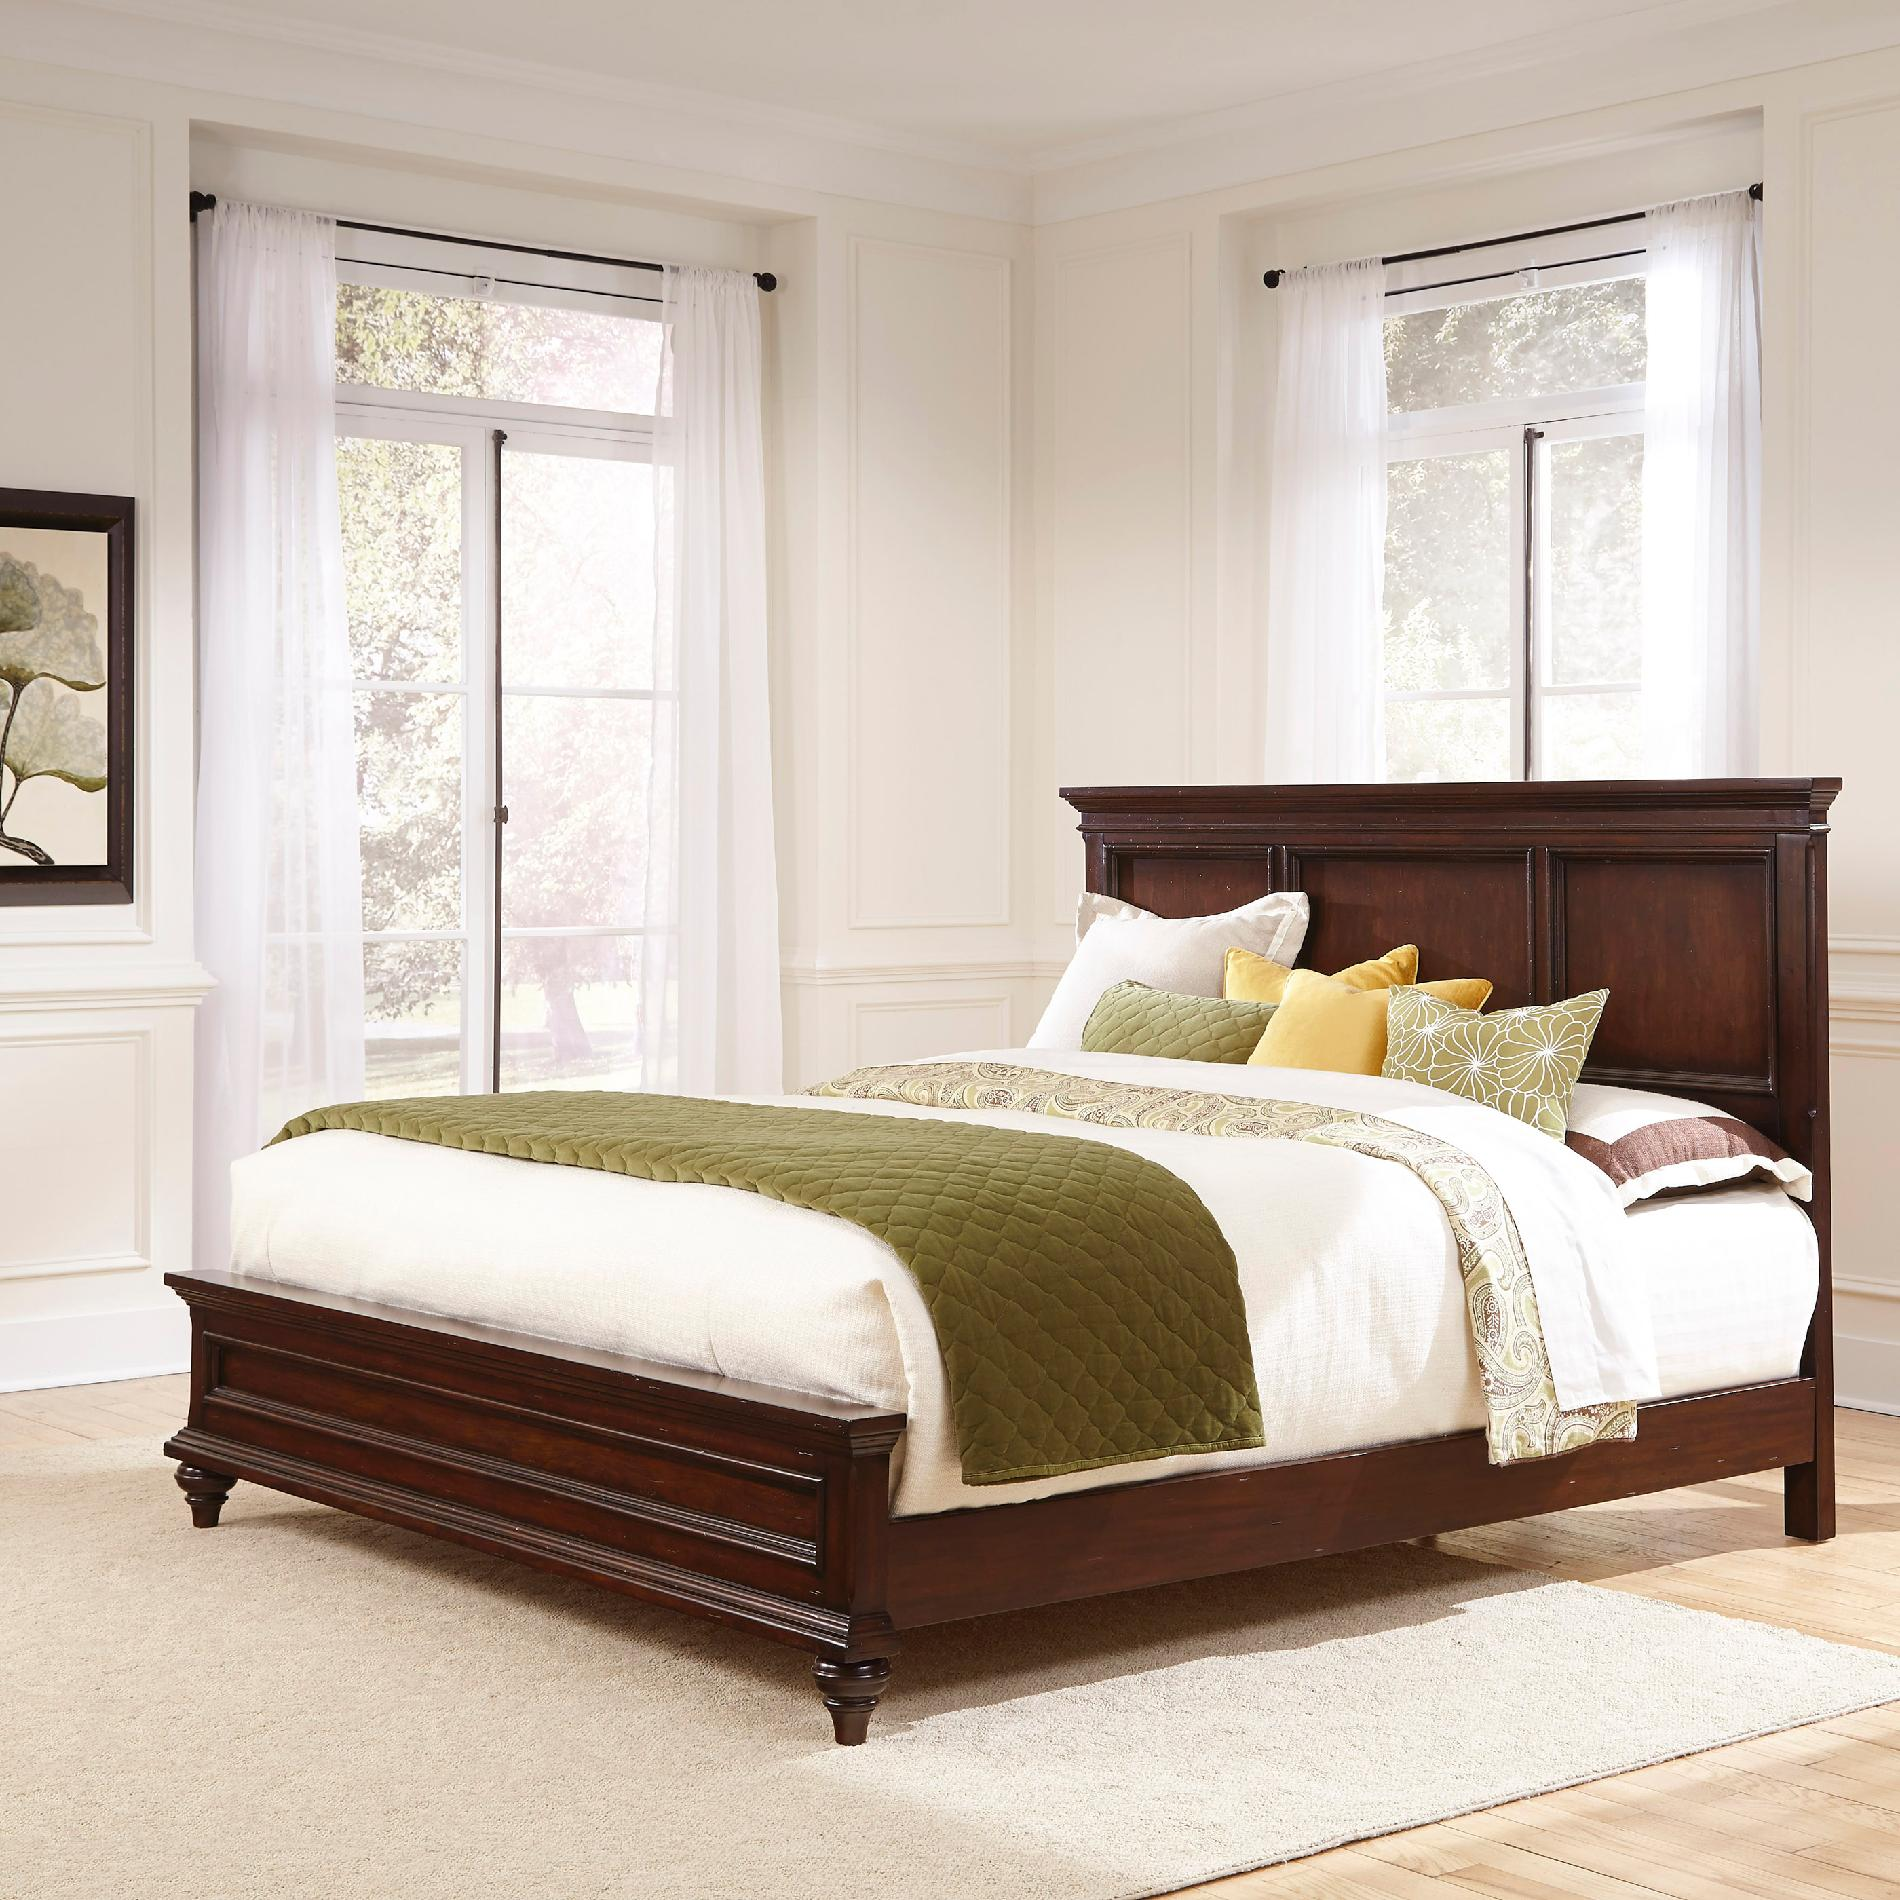 Home styles colonial classic king bed for Colonial beds